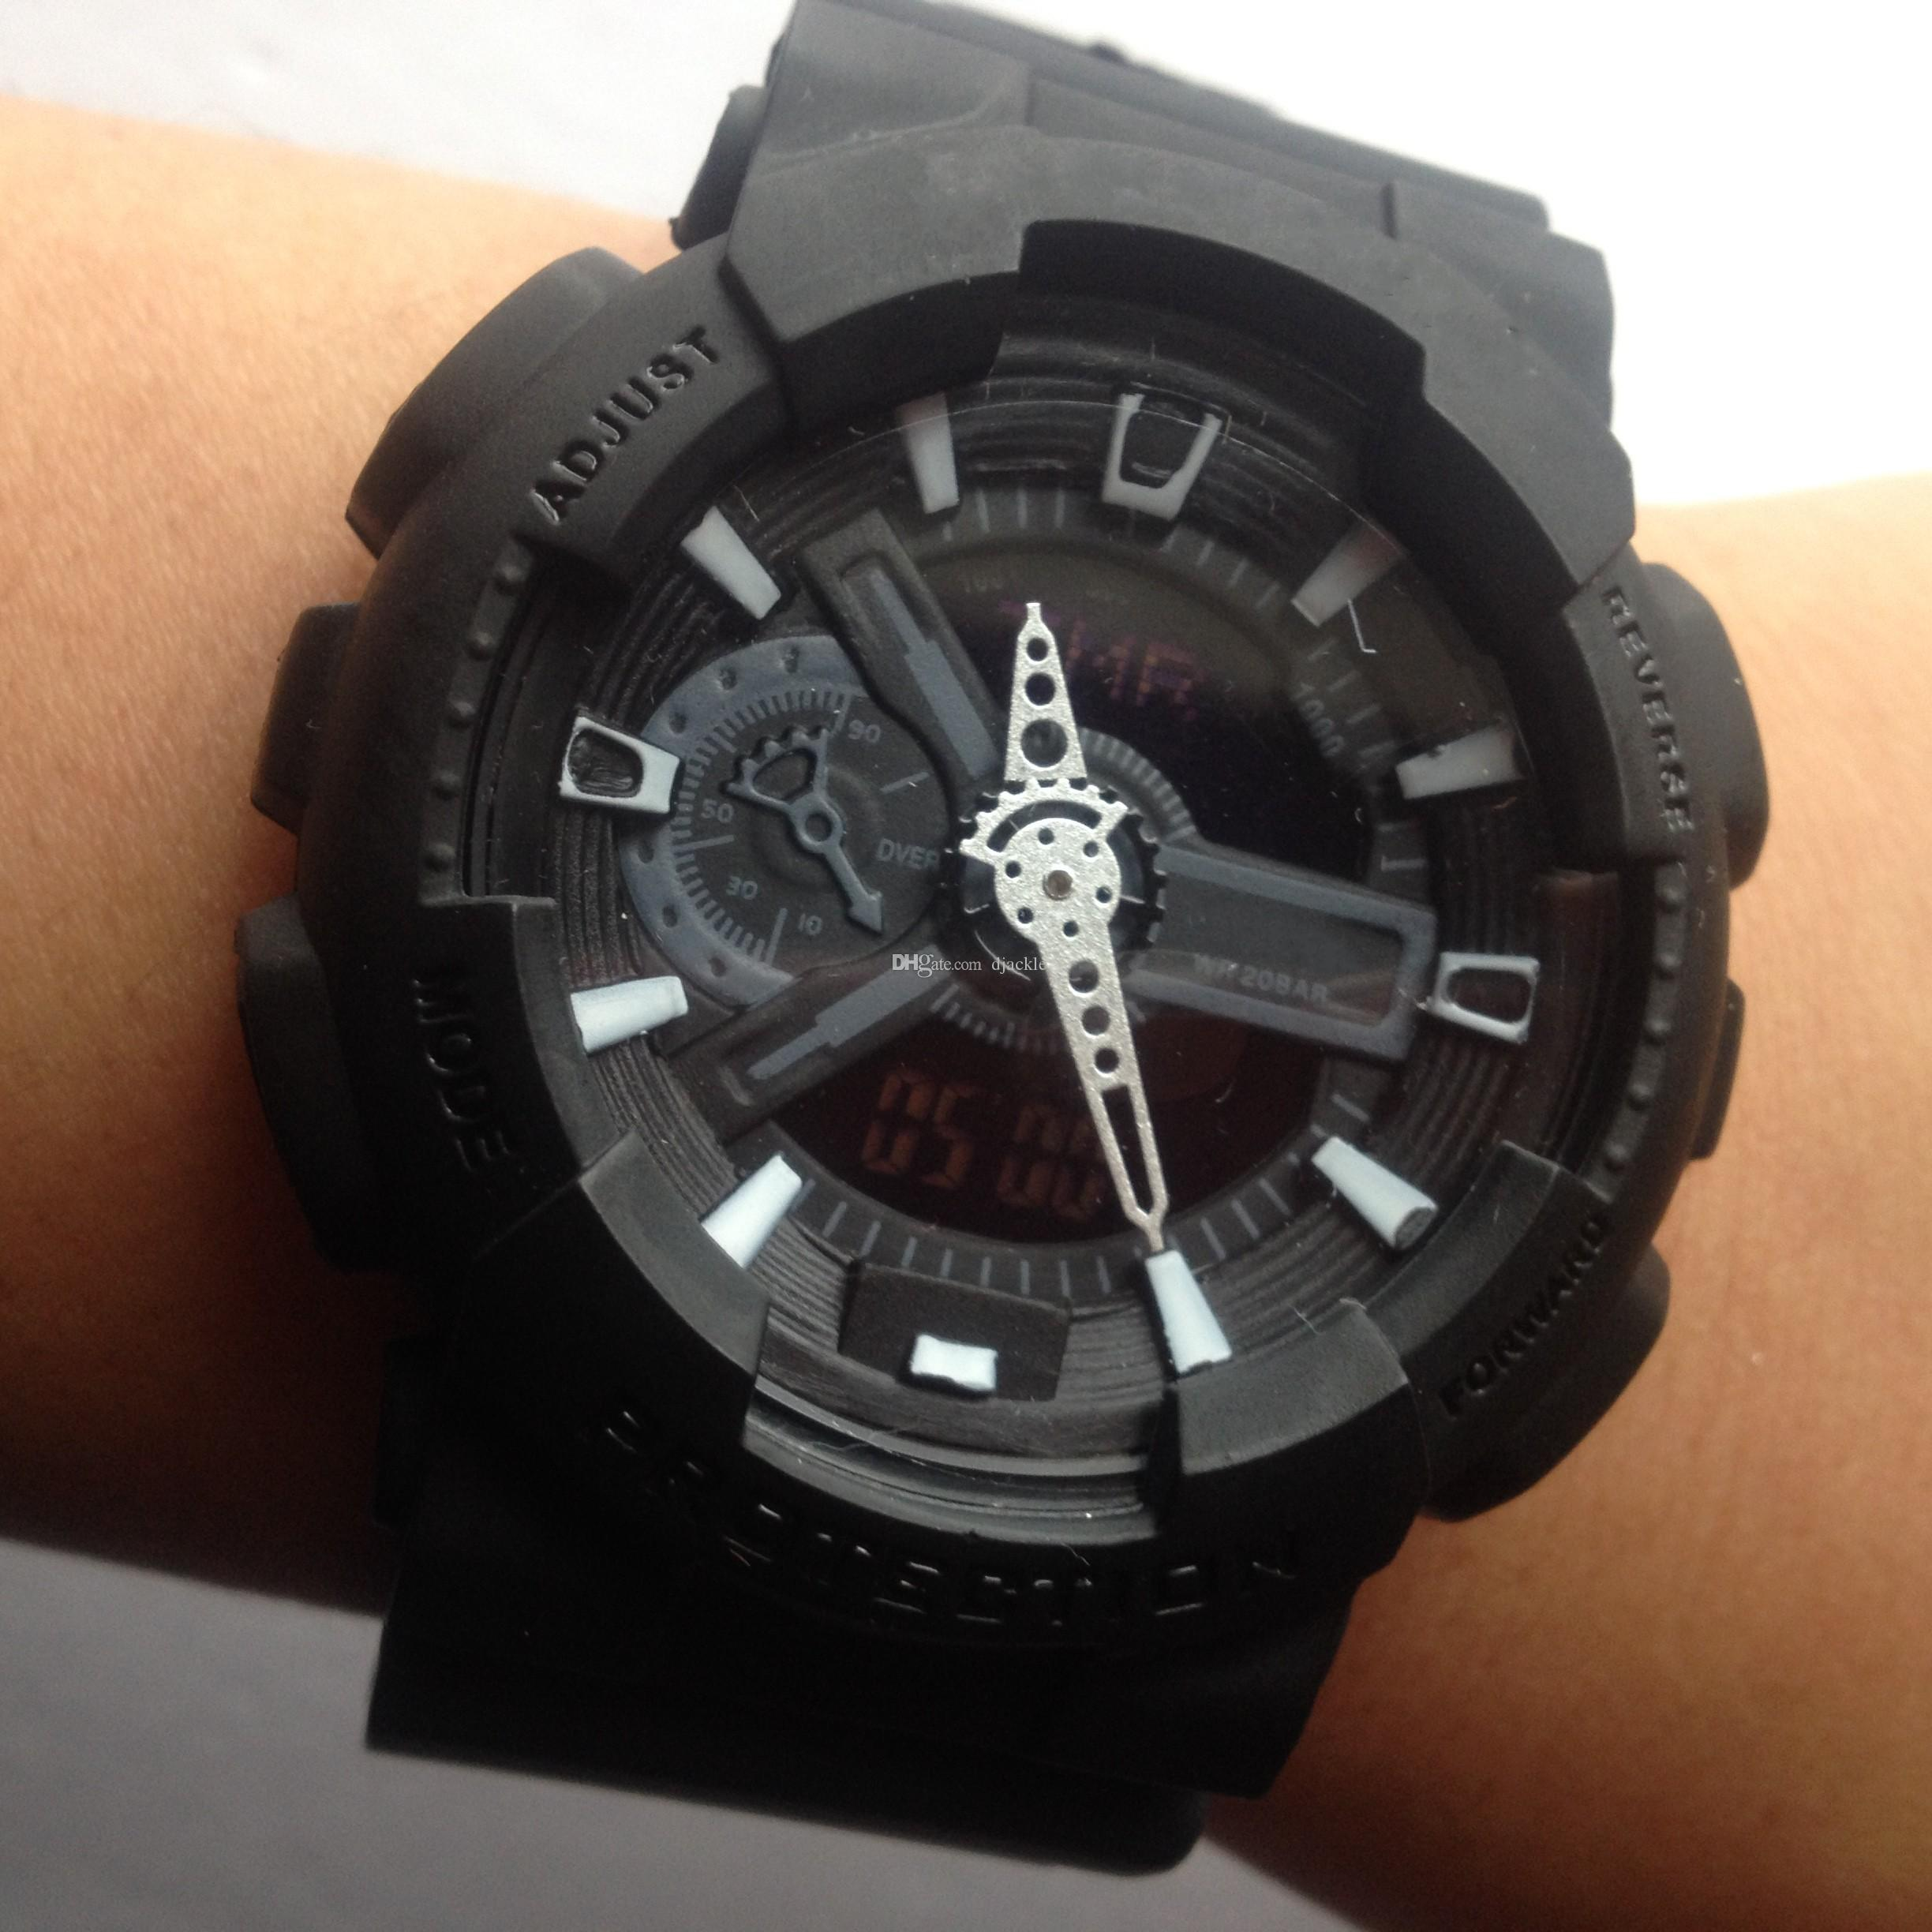 watchmatte black color g110 sports watches led chronograph wristwatch military watch digital watches good gift for women men boy buy a watch online watch